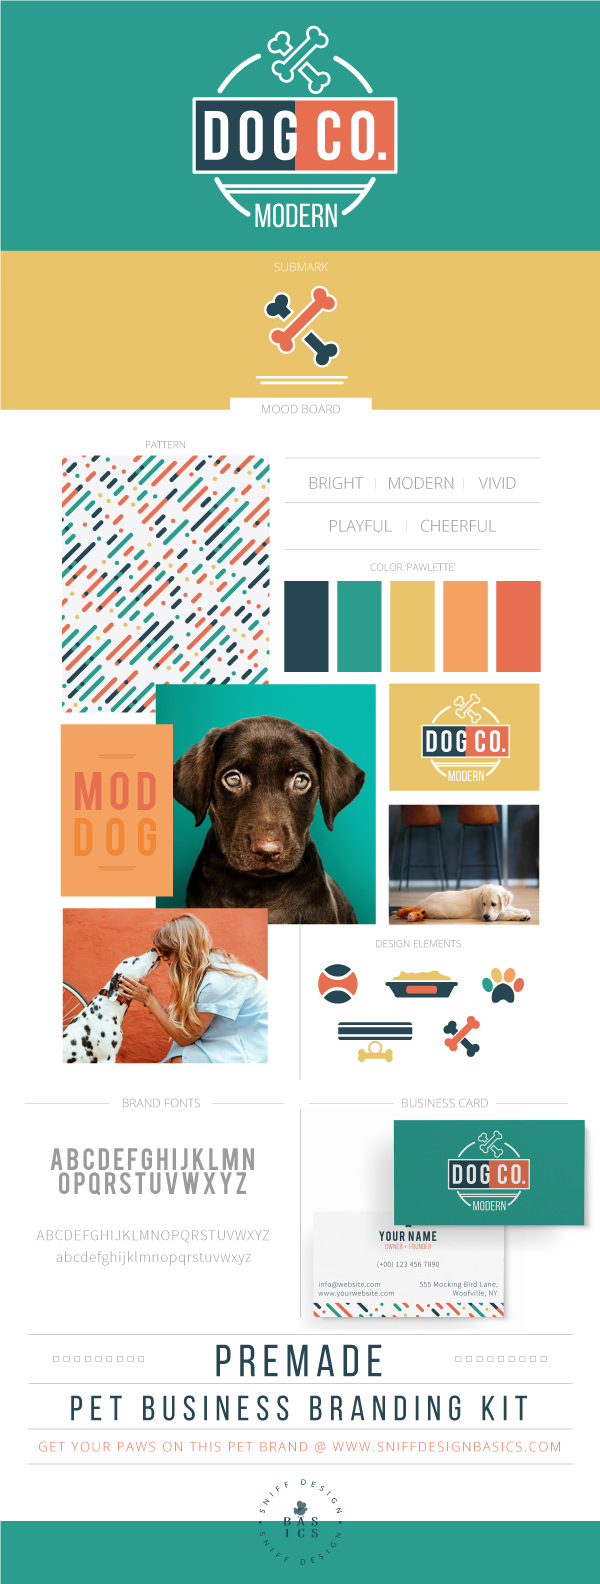 A Modern Dog Premade Pet Business Branding Kit by Sniff Design Basics